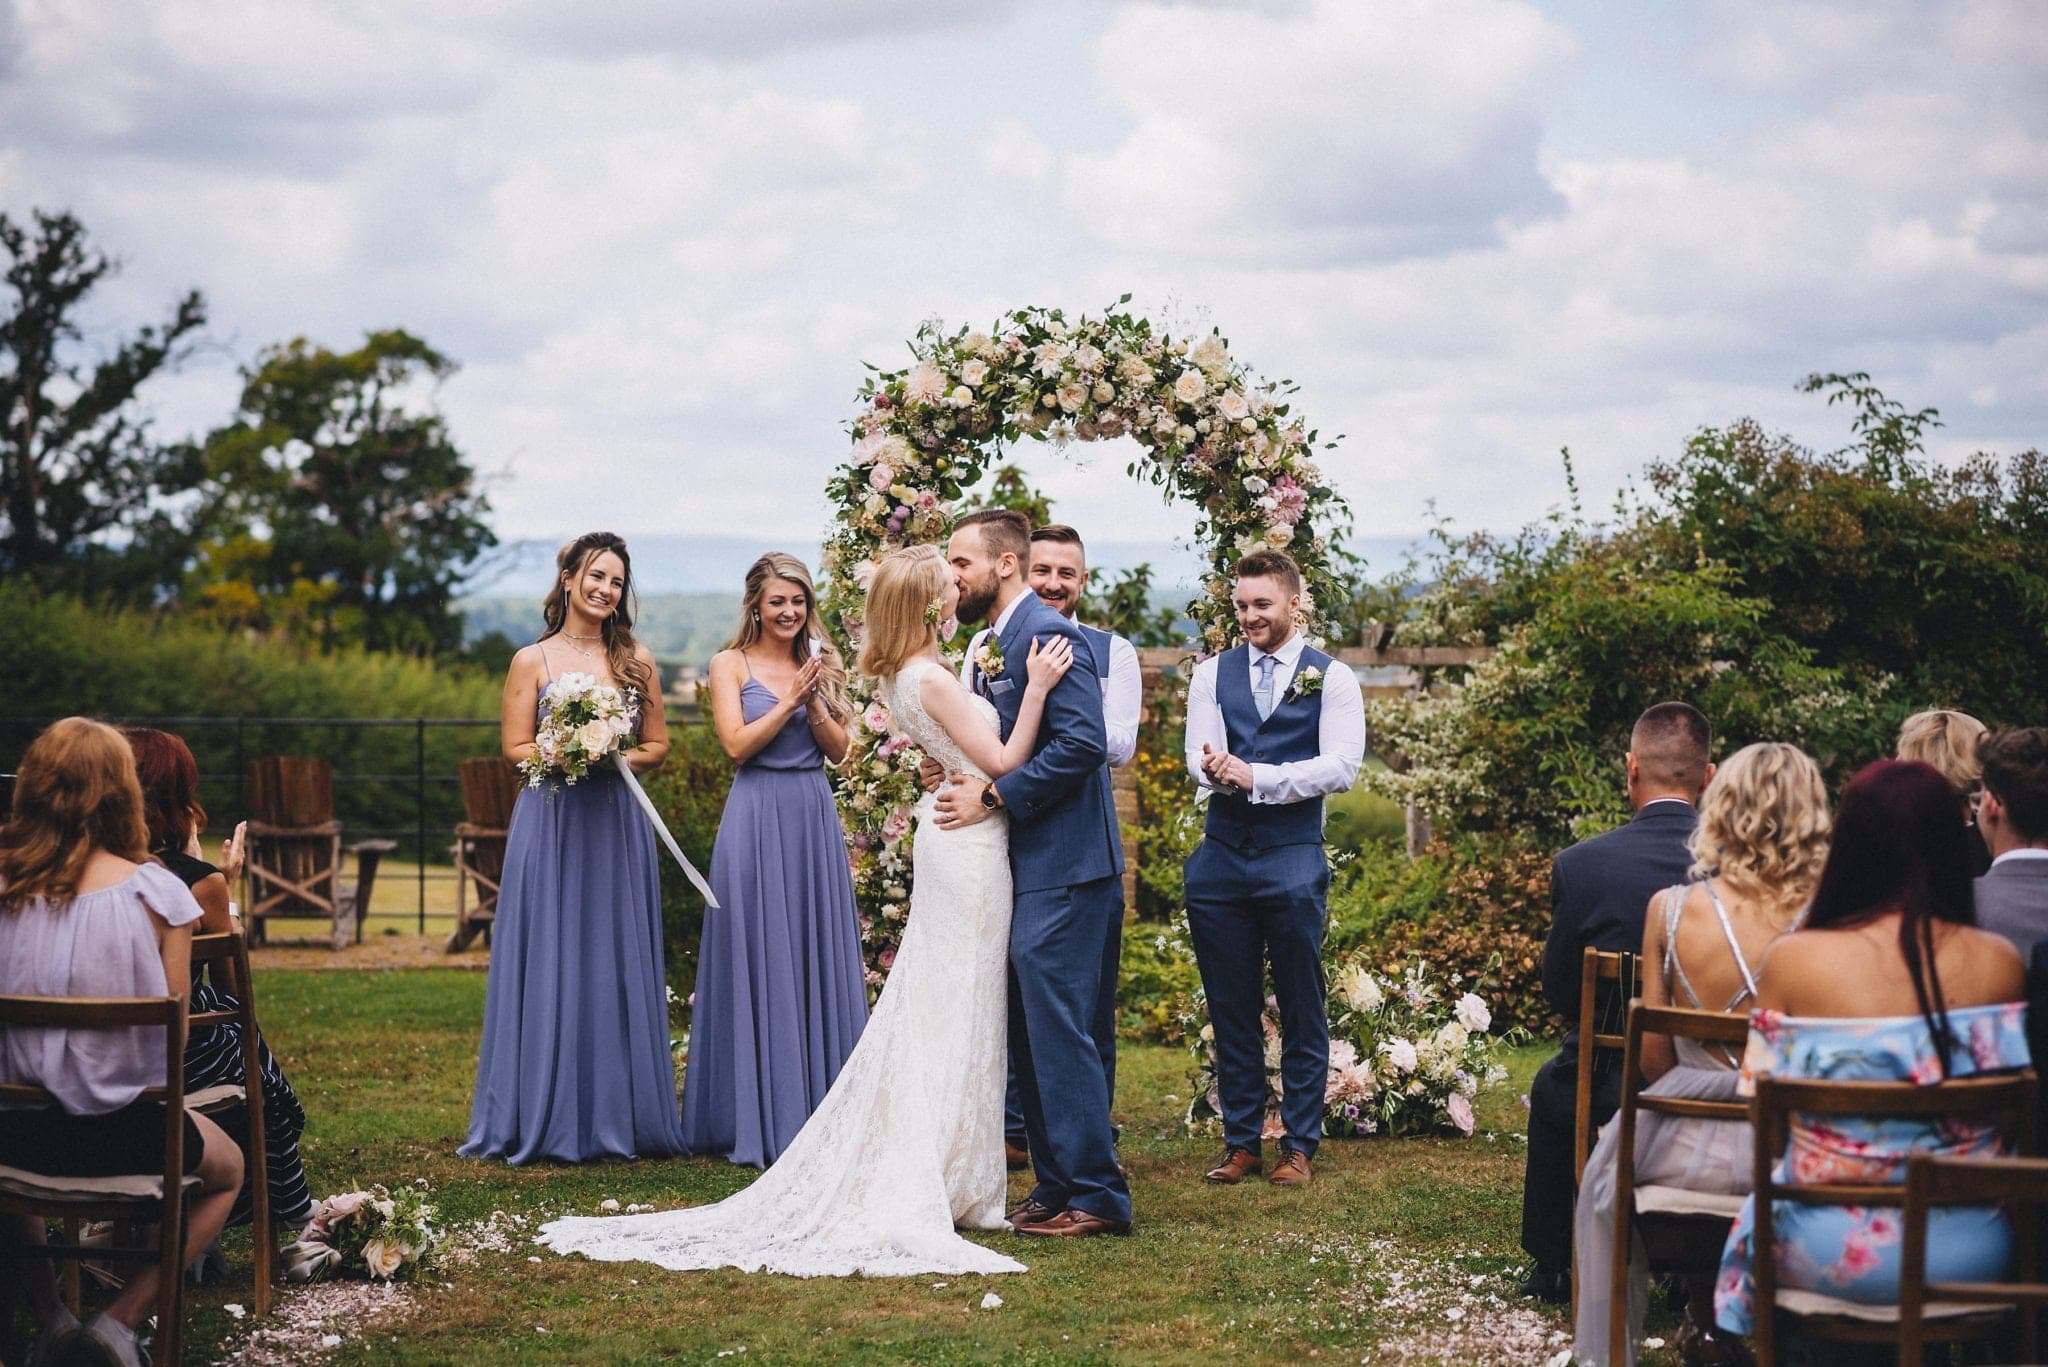 Bride and groom kiss in front of flower arch